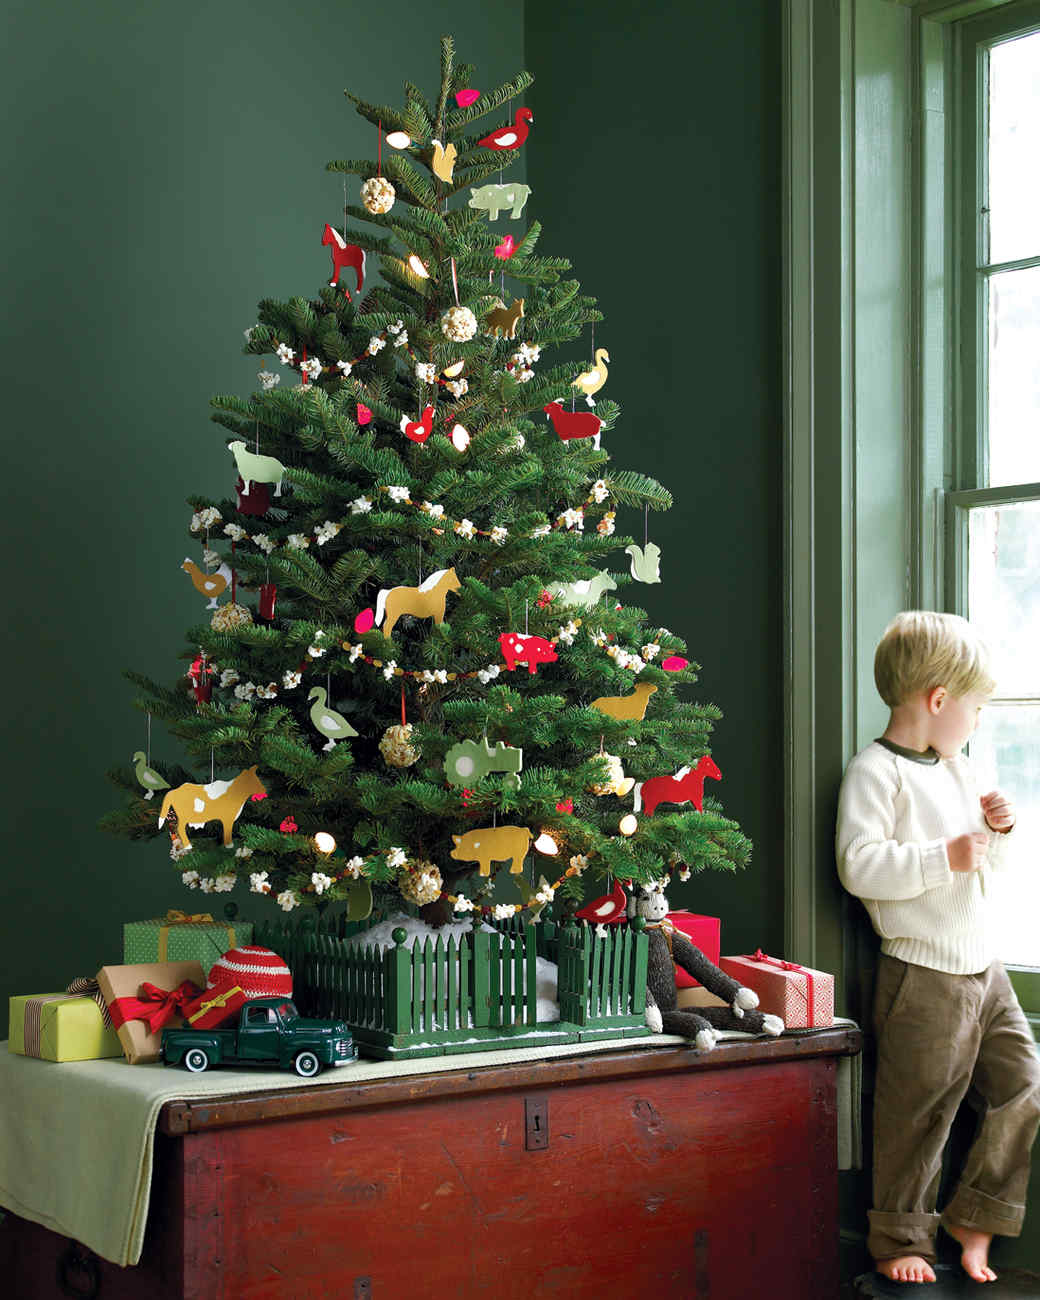 28 creative christmas tree decorating ideas martha stewart - Christmas Tree And Decorations